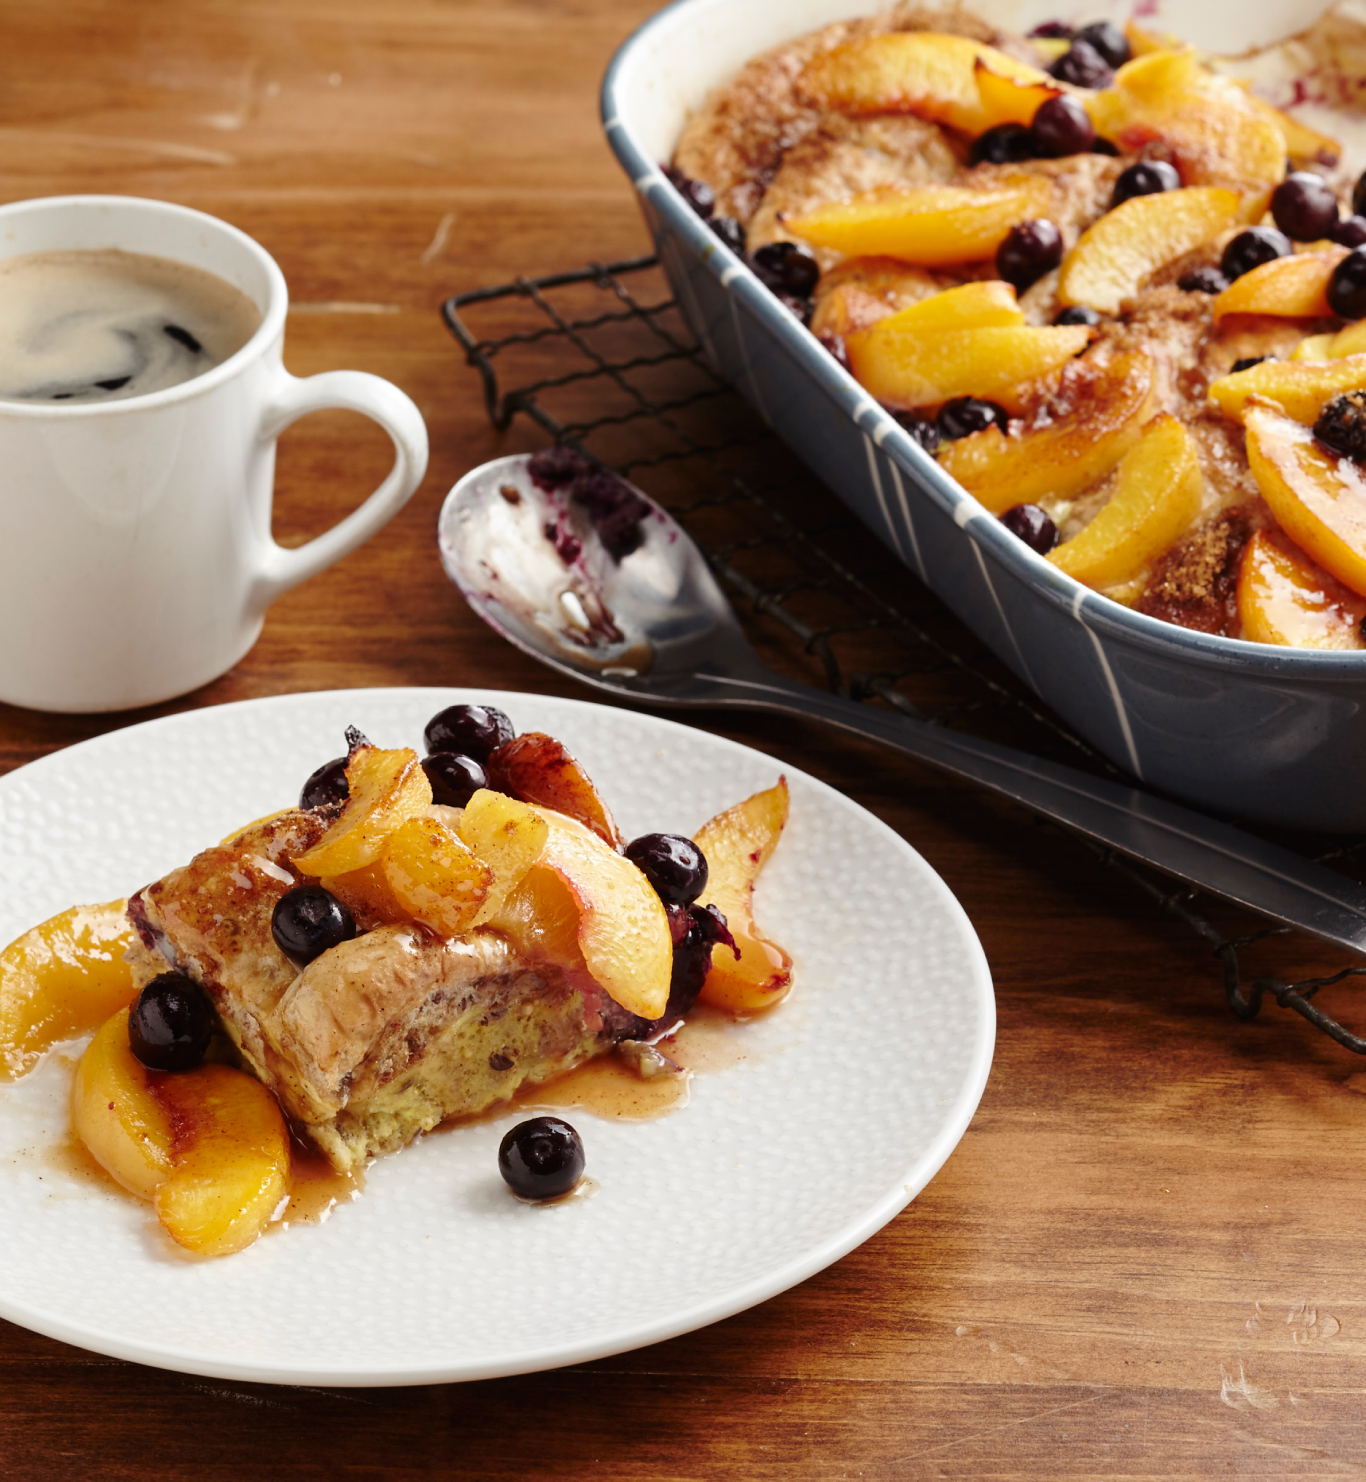 Peach and Blueberry Bake